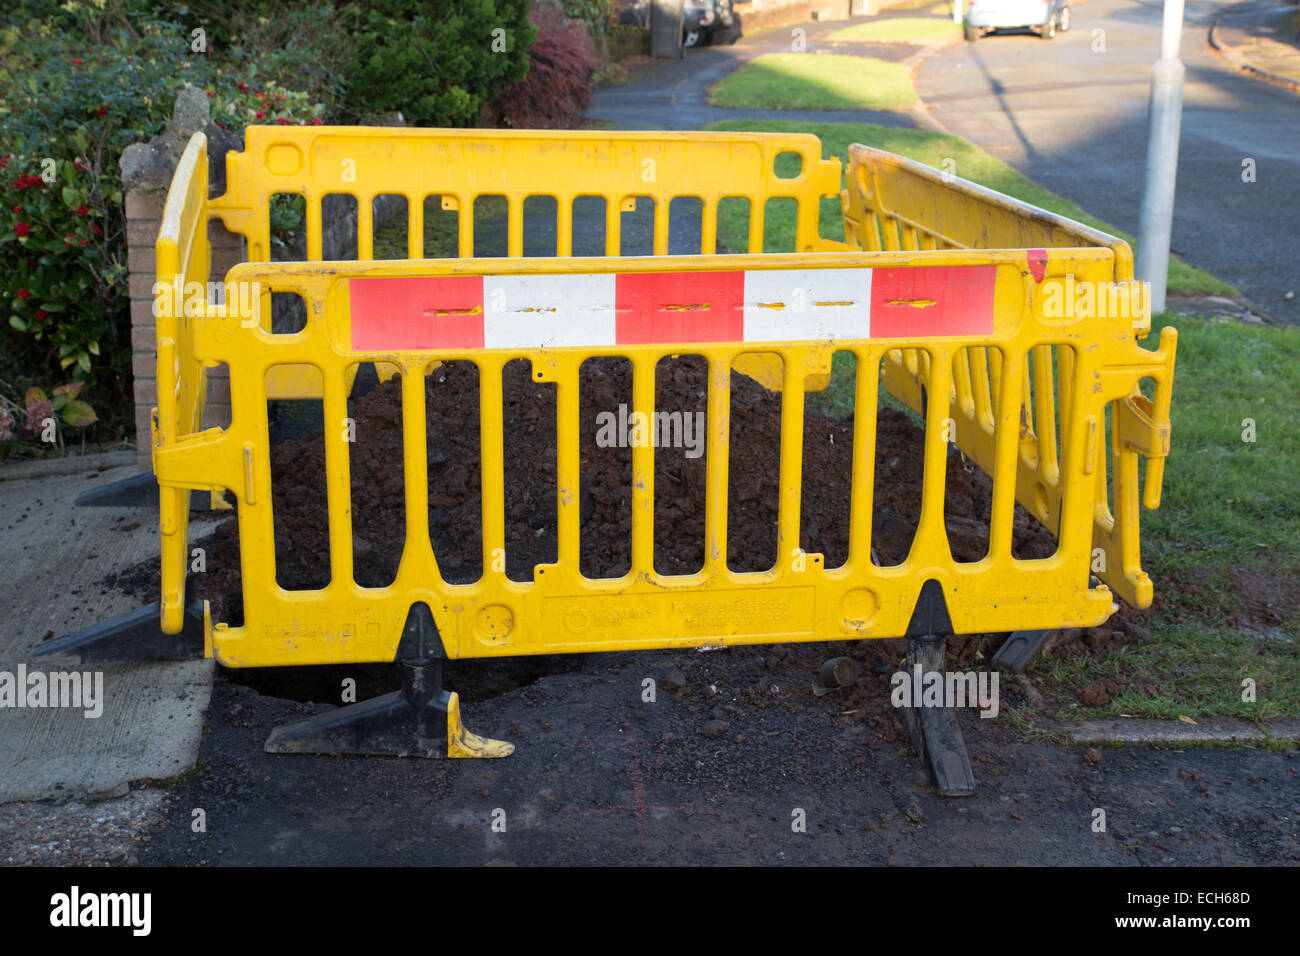 Road works caused by a gas leak. - Stock Image